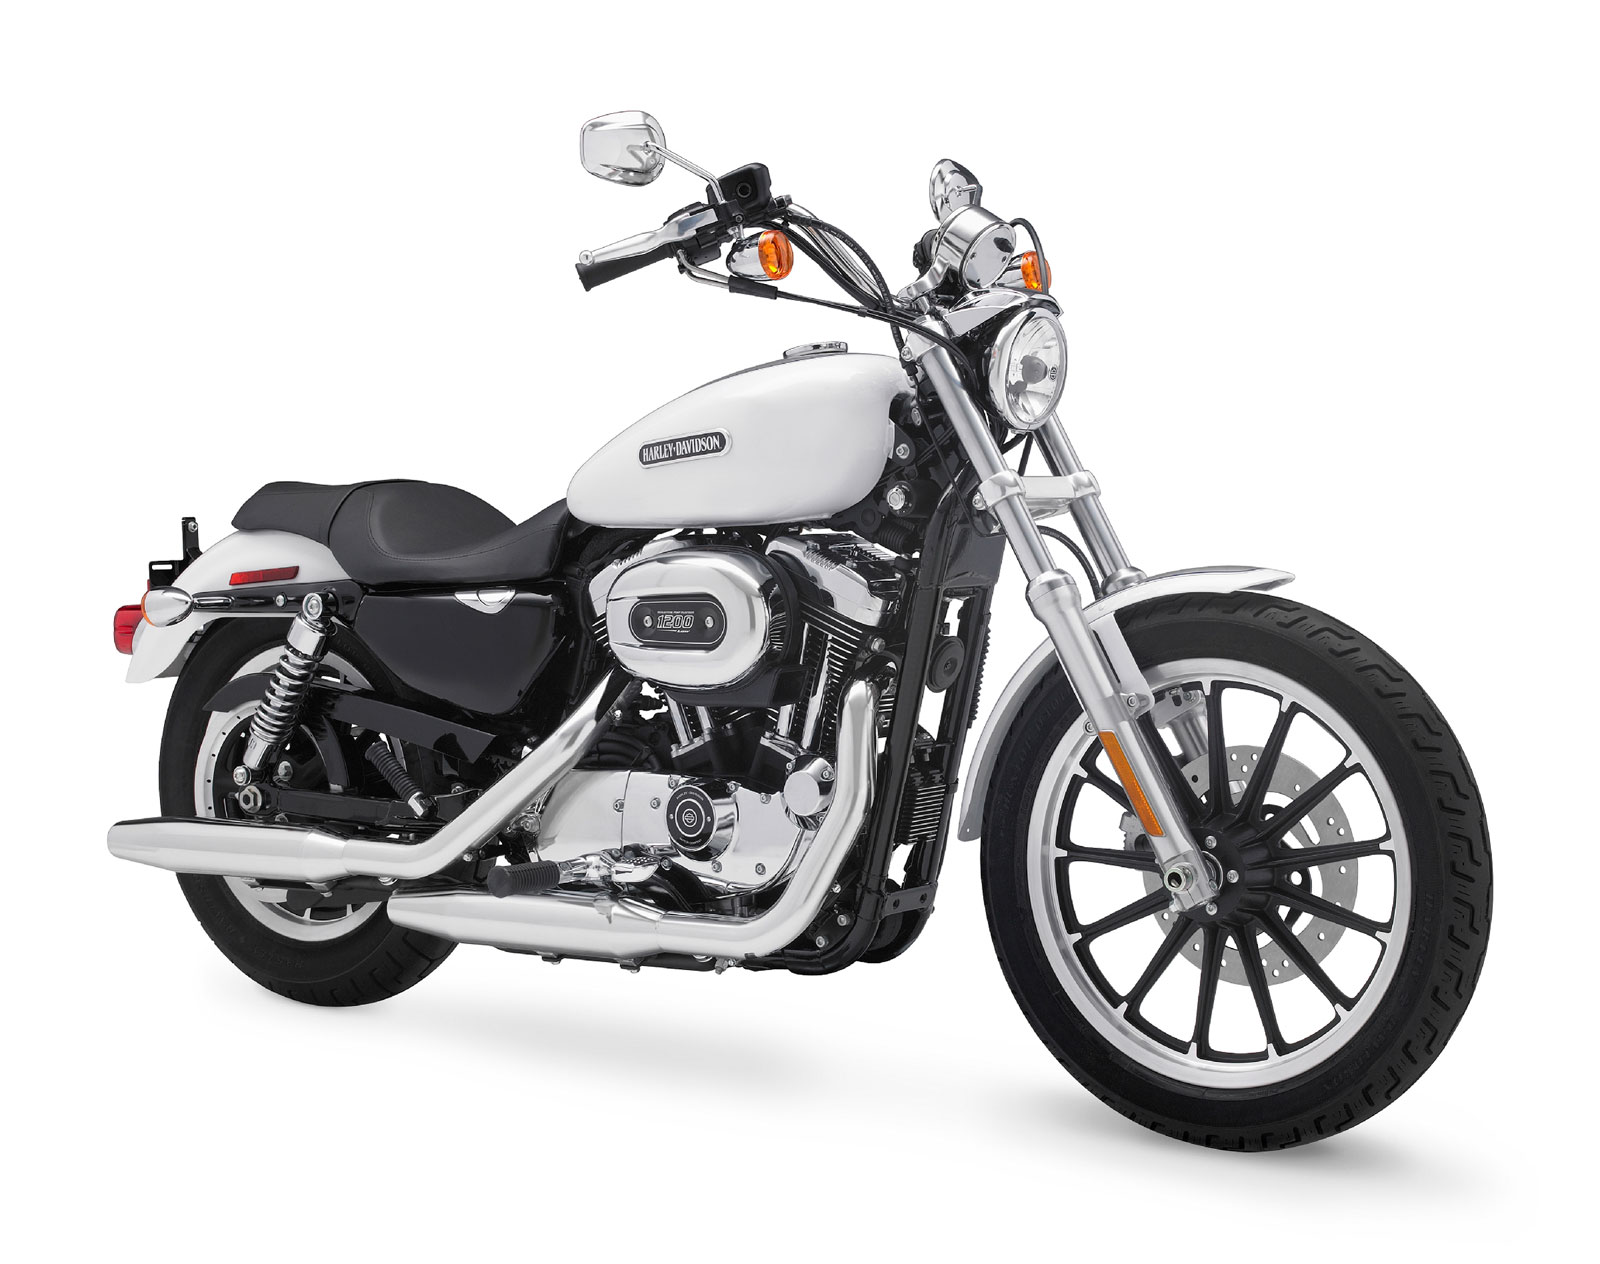 frozen 39 s bike 2009 harley davidson sportster 1200 low xl1200l. Black Bedroom Furniture Sets. Home Design Ideas